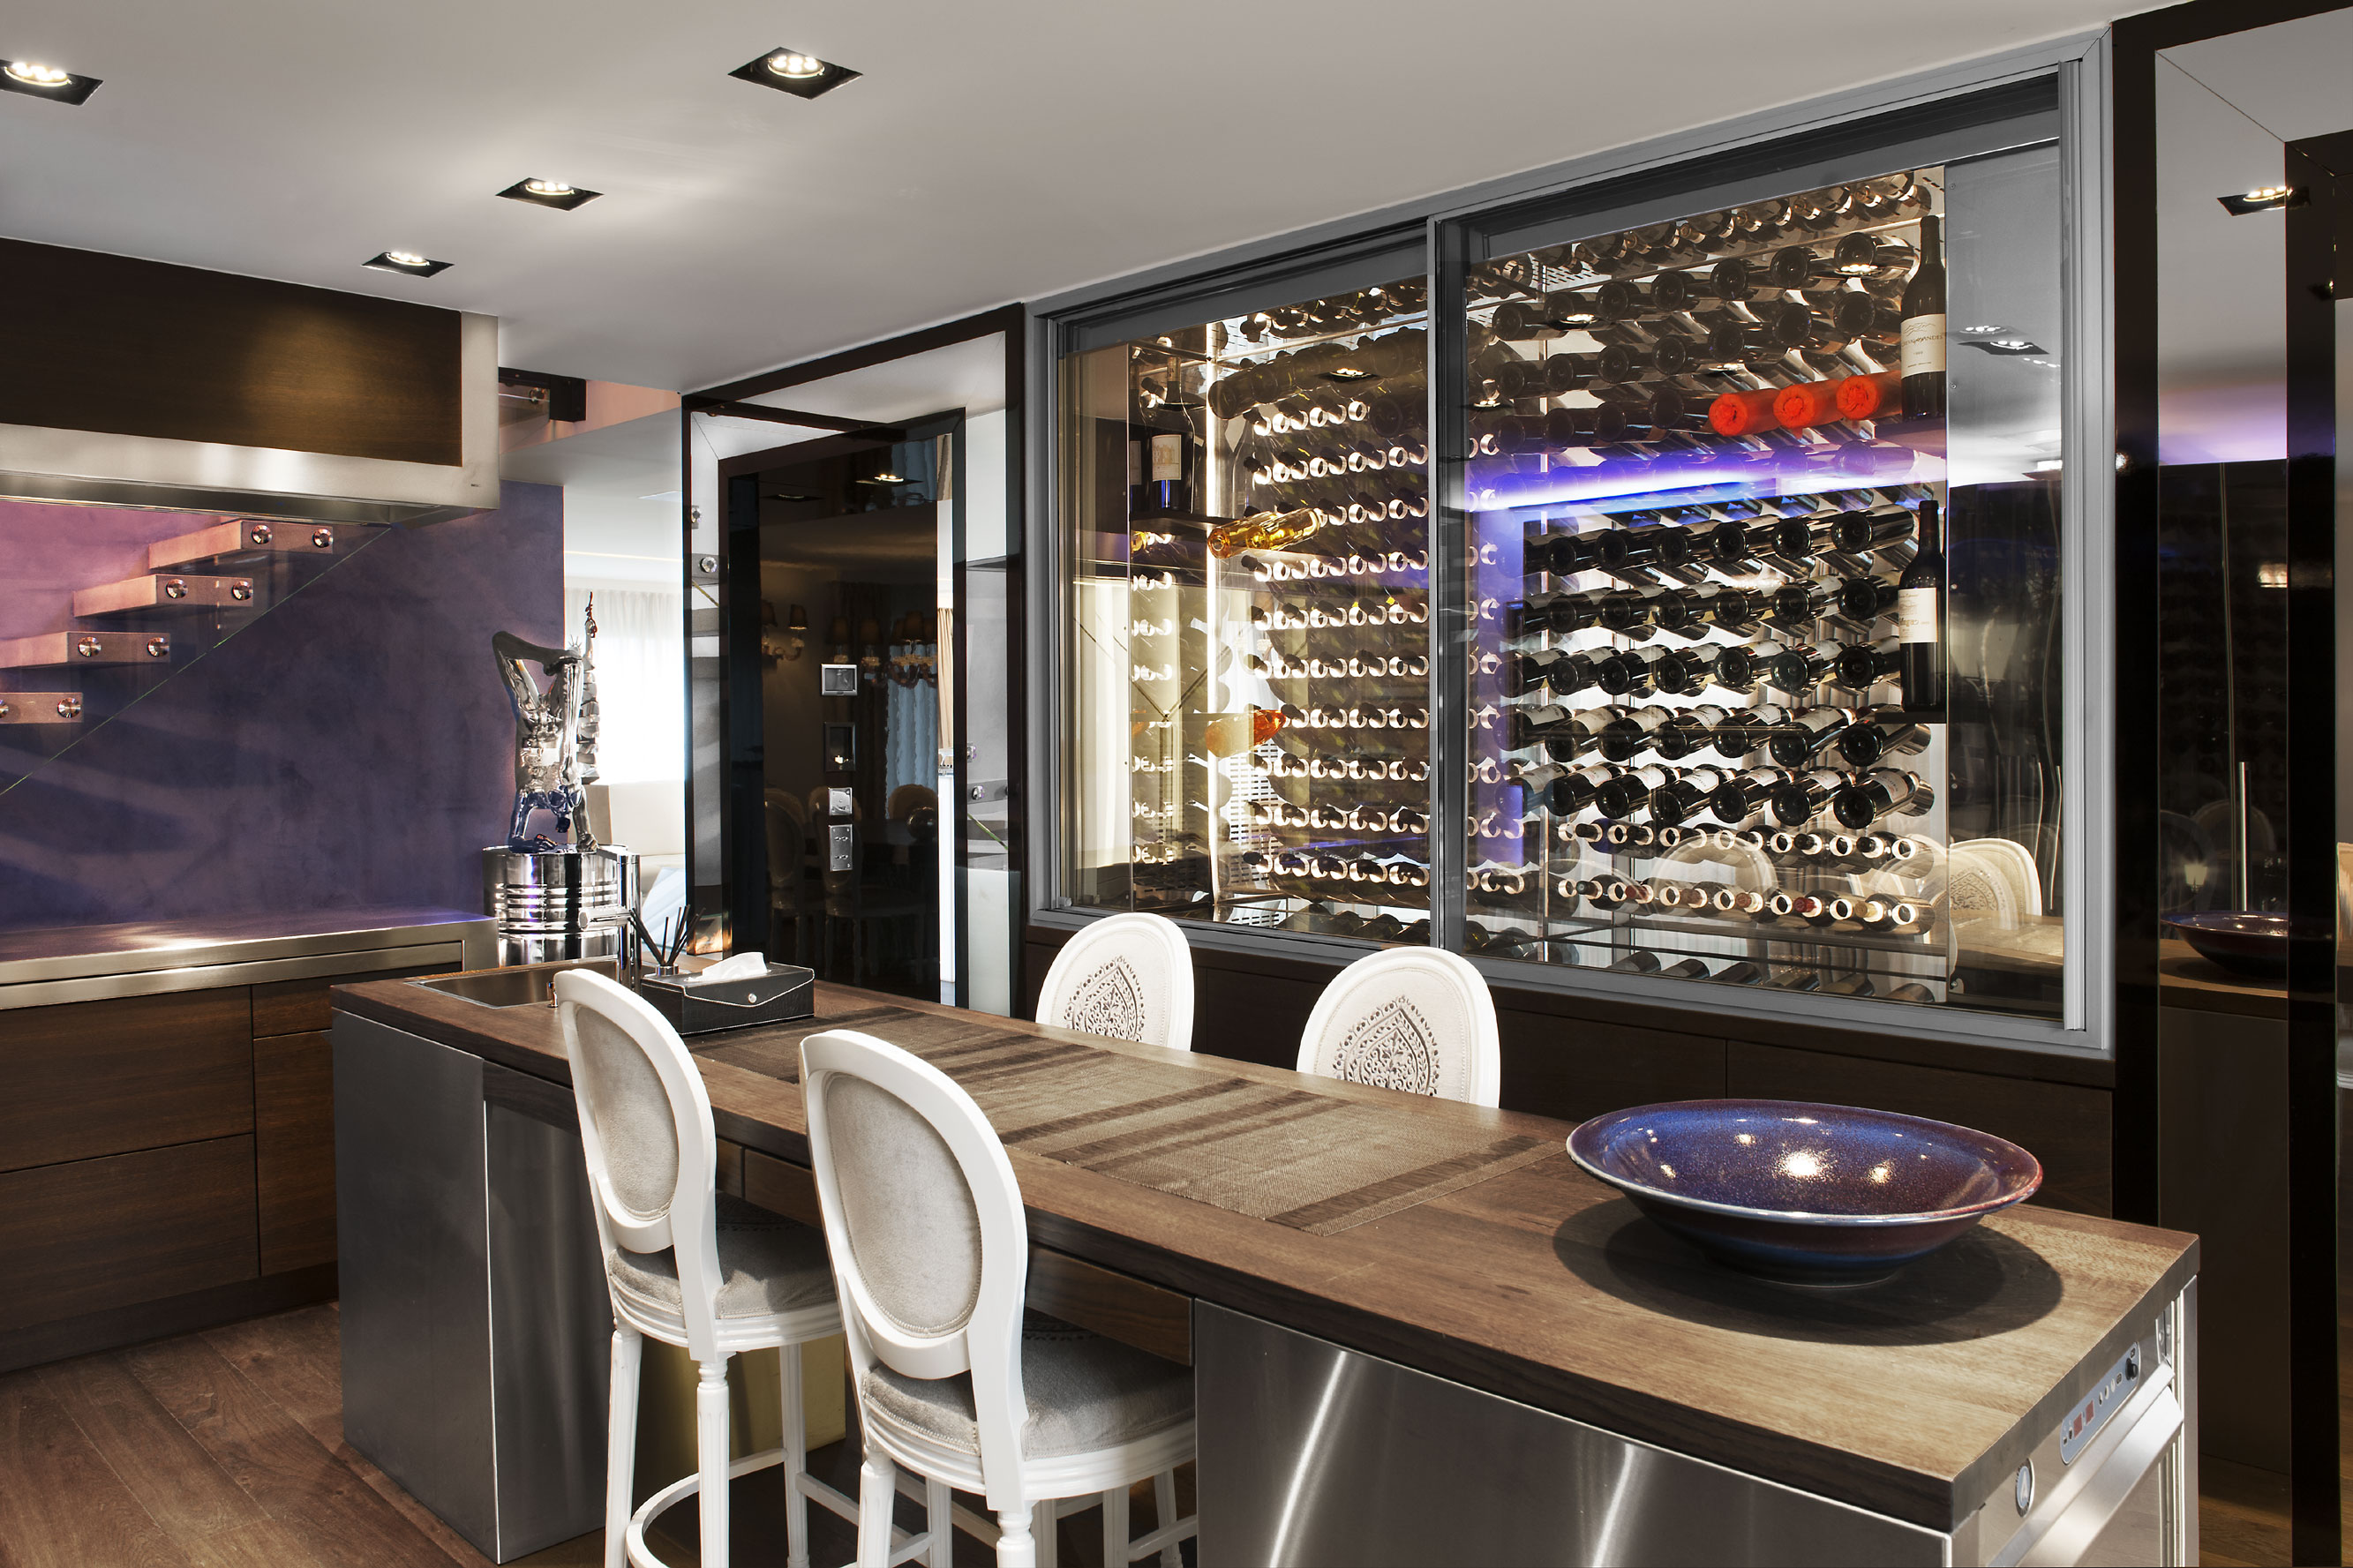 This contemporary apartment in Confignon, a picturesque suburb of Geneva, has a sleek multi-bottle wine display, with temperature-controlled storage, overlooking the dining room.